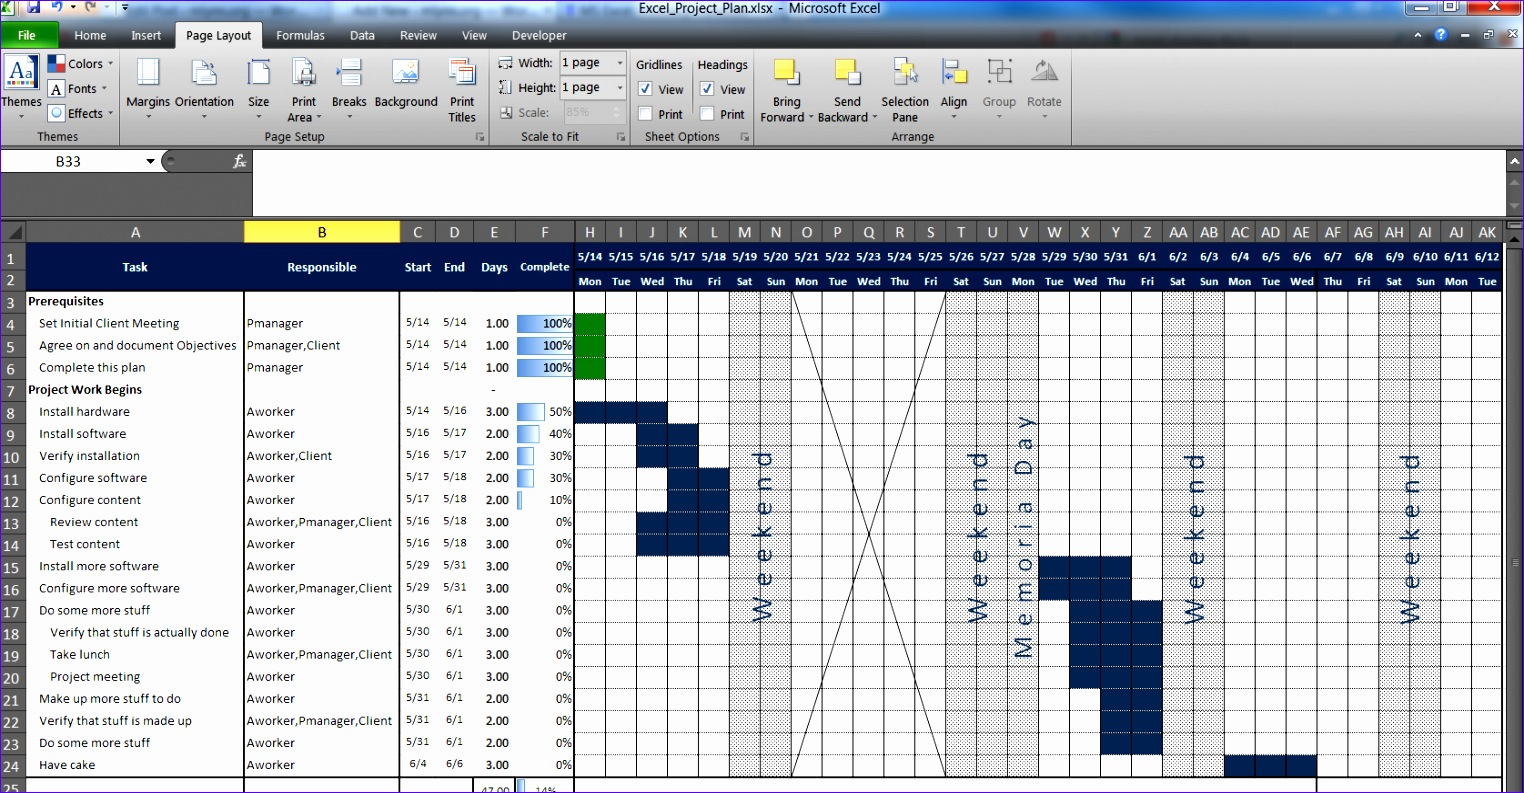 Microsoft Excel Project Plan Template Free Ufanr Awesome An Excel Project Planning Spreadsheet – Mlynn org